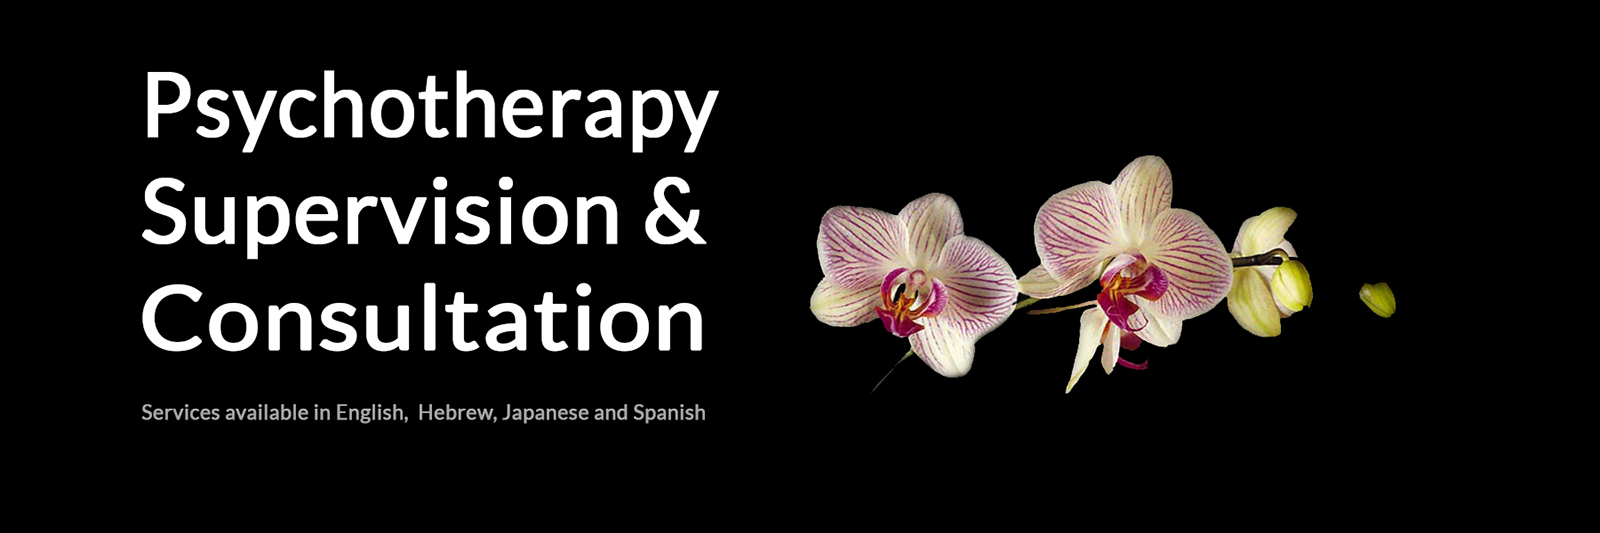 psychotherapy-consultation